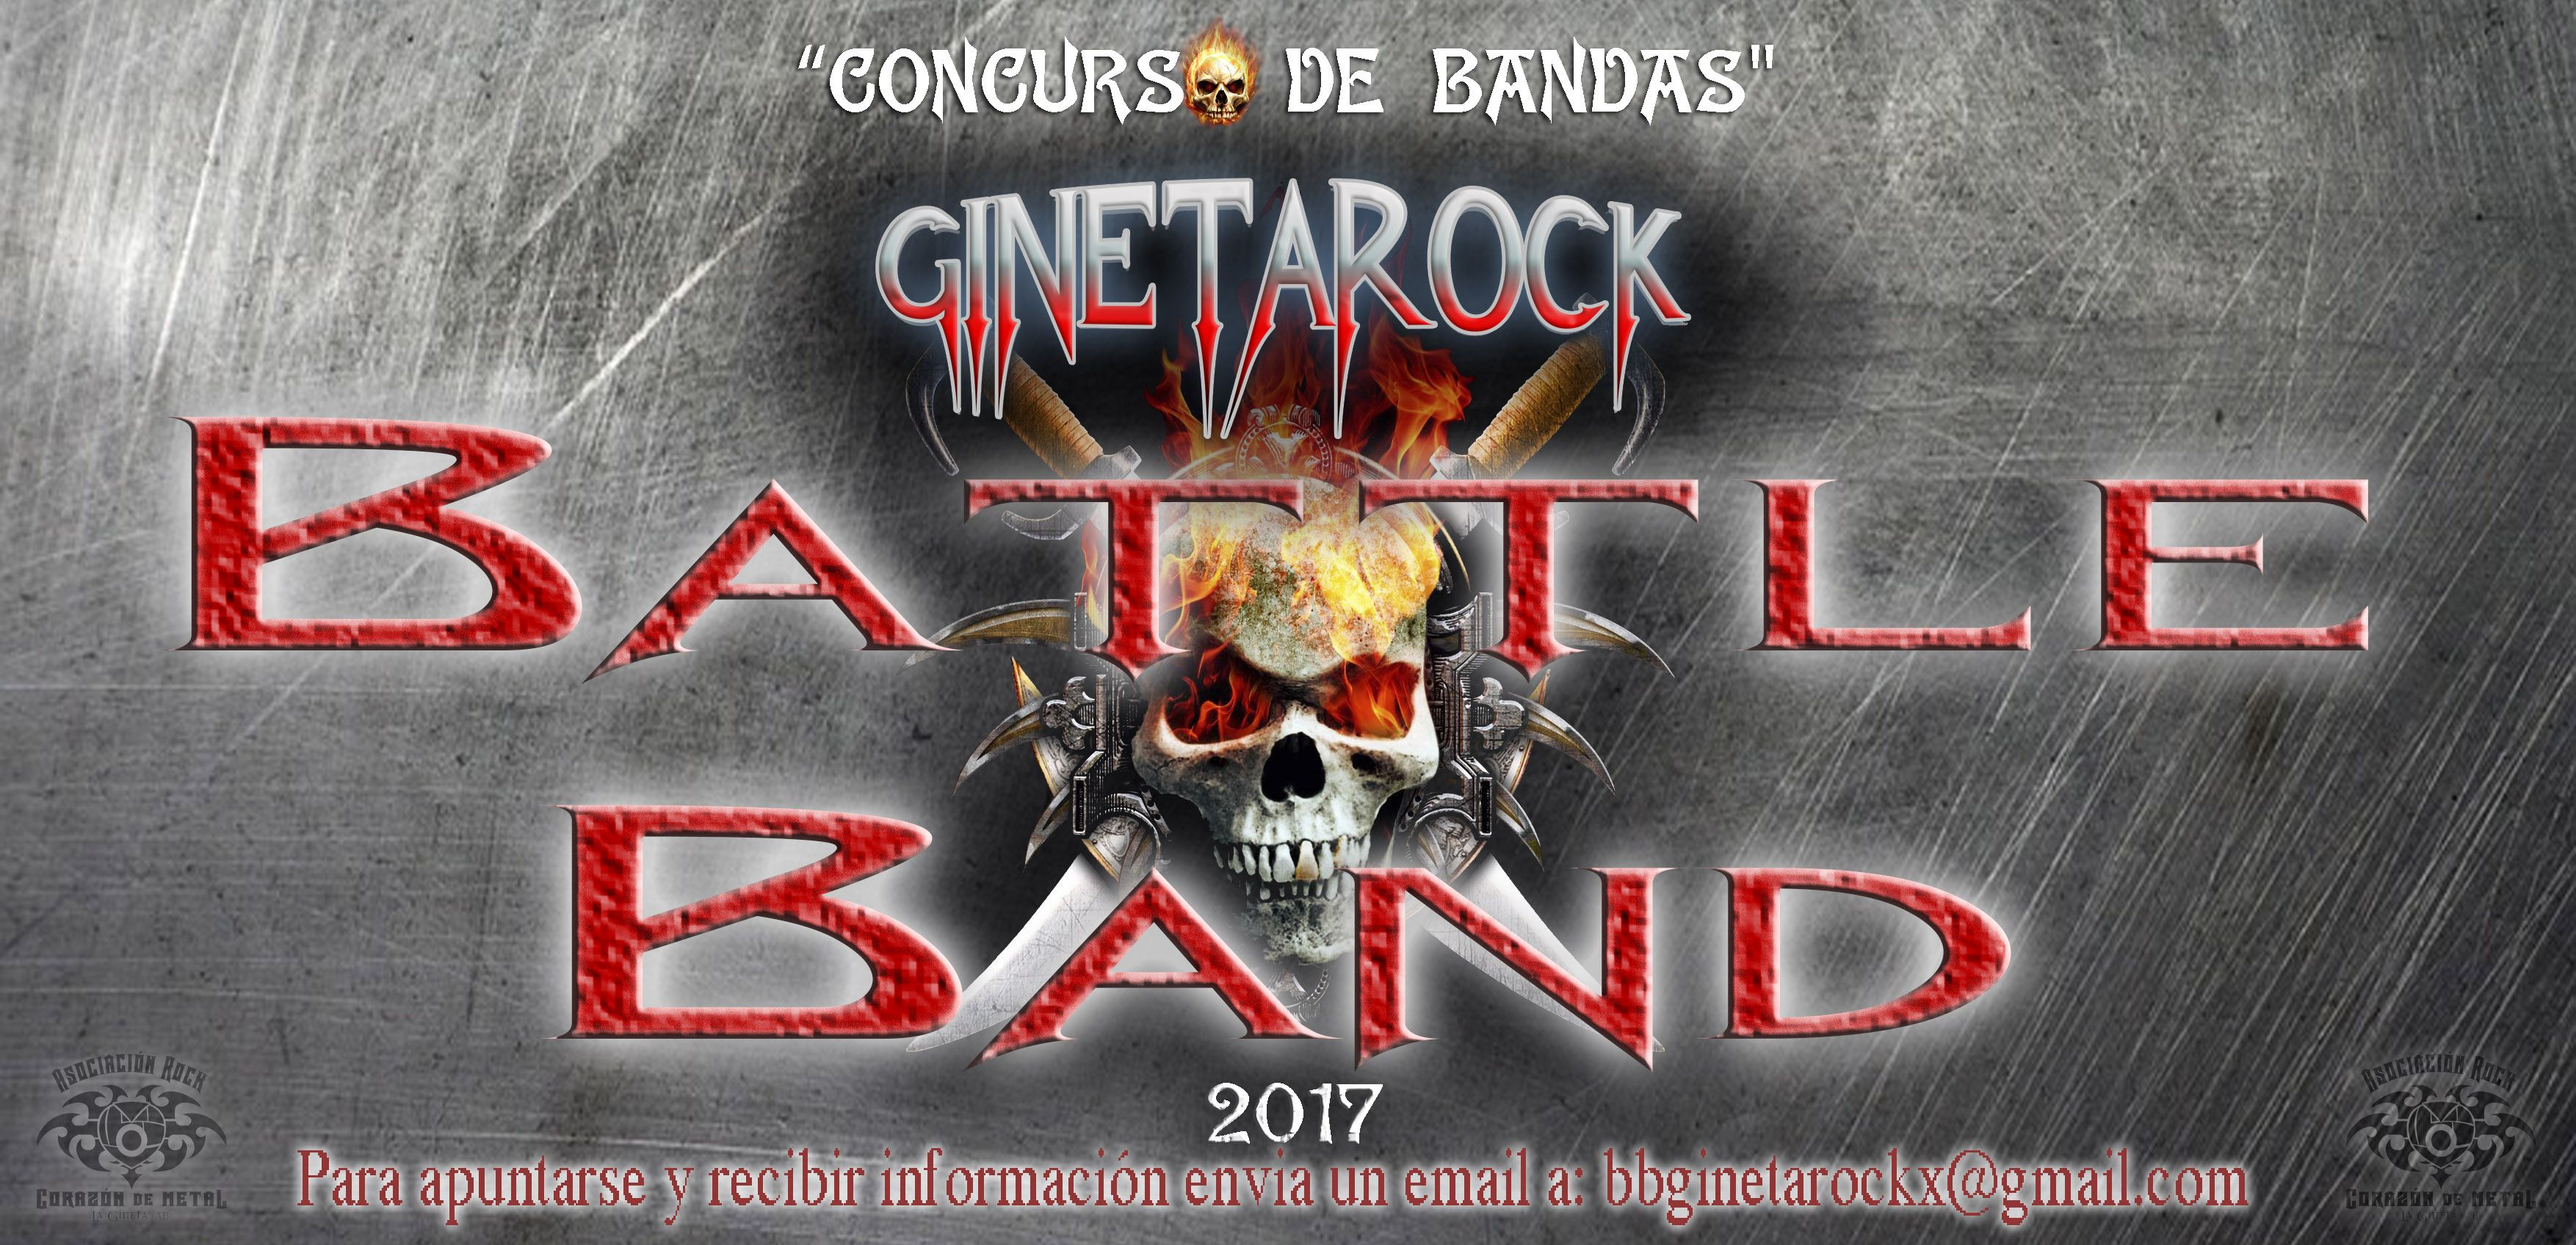 battle-band-ginetarock-2017